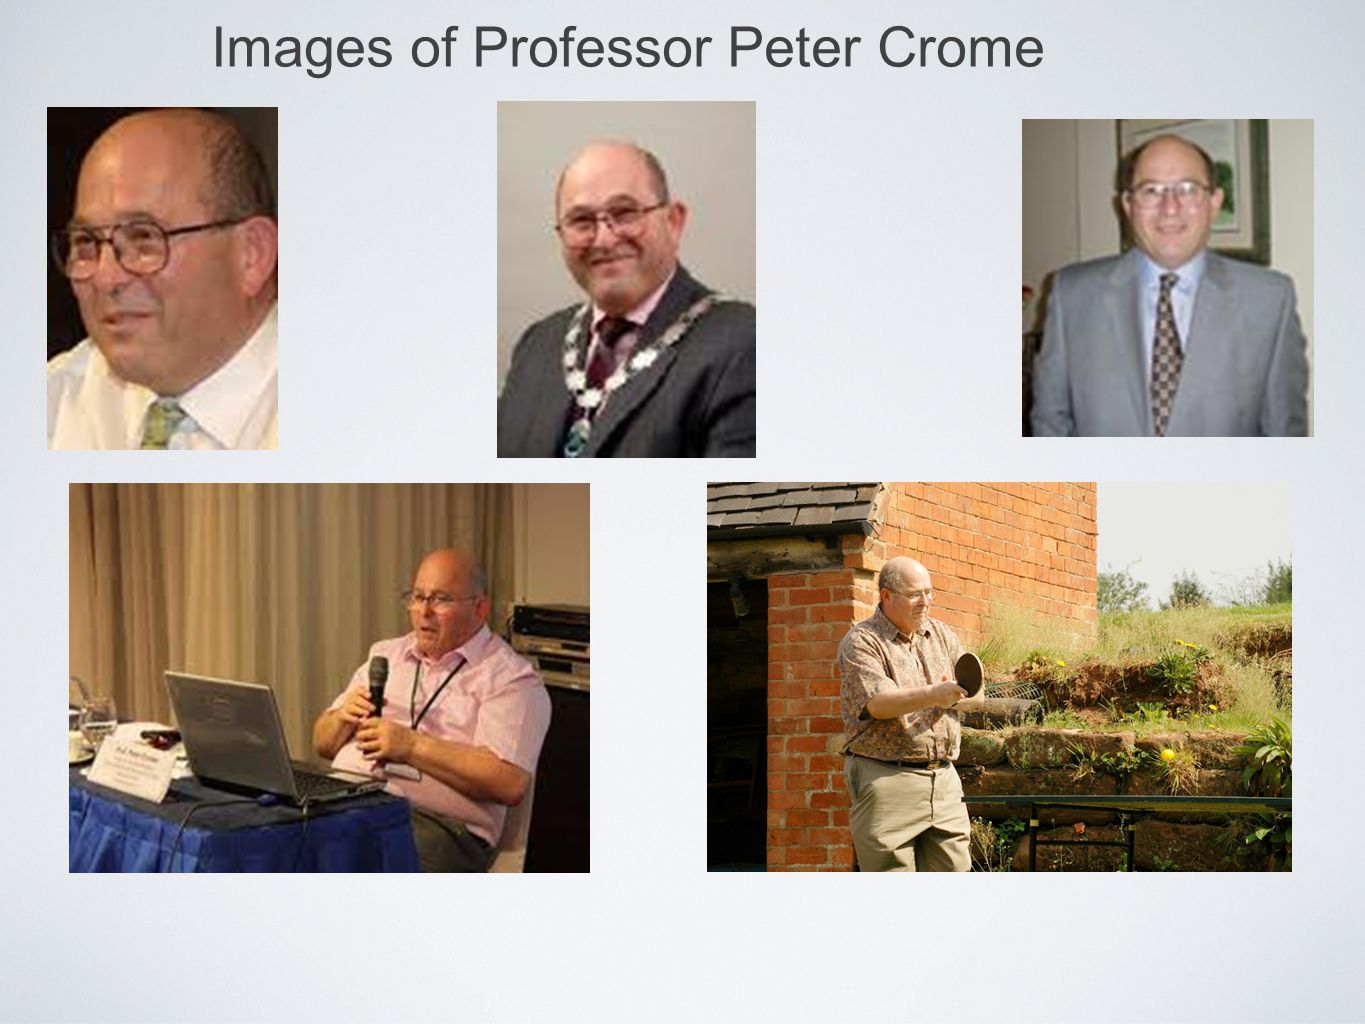 Images of Professor Peter Crome